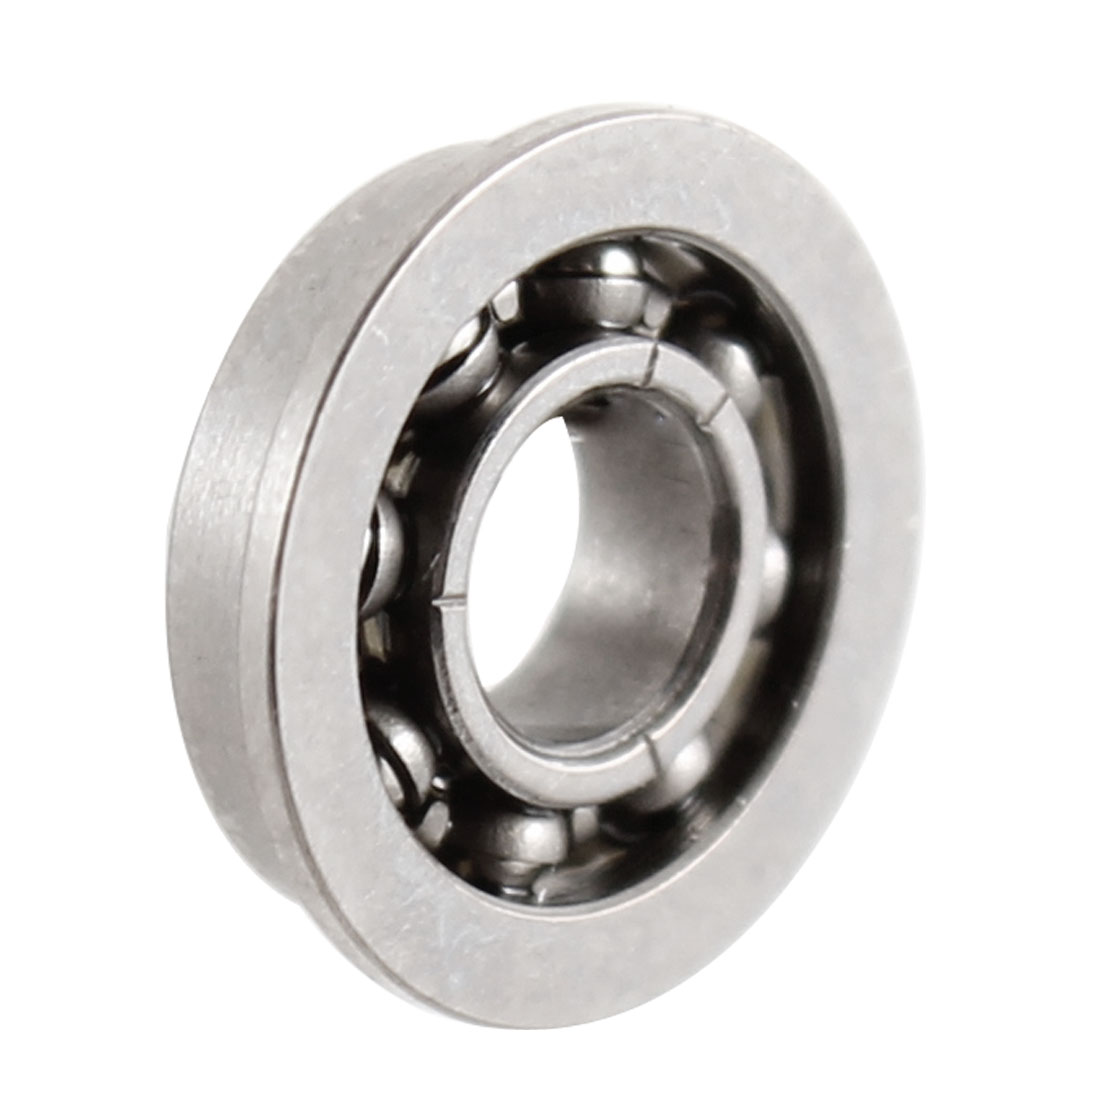 Stainless Steel Open Type Flanged Deep Groove Ball Bearing 3mmx7mmx2mm